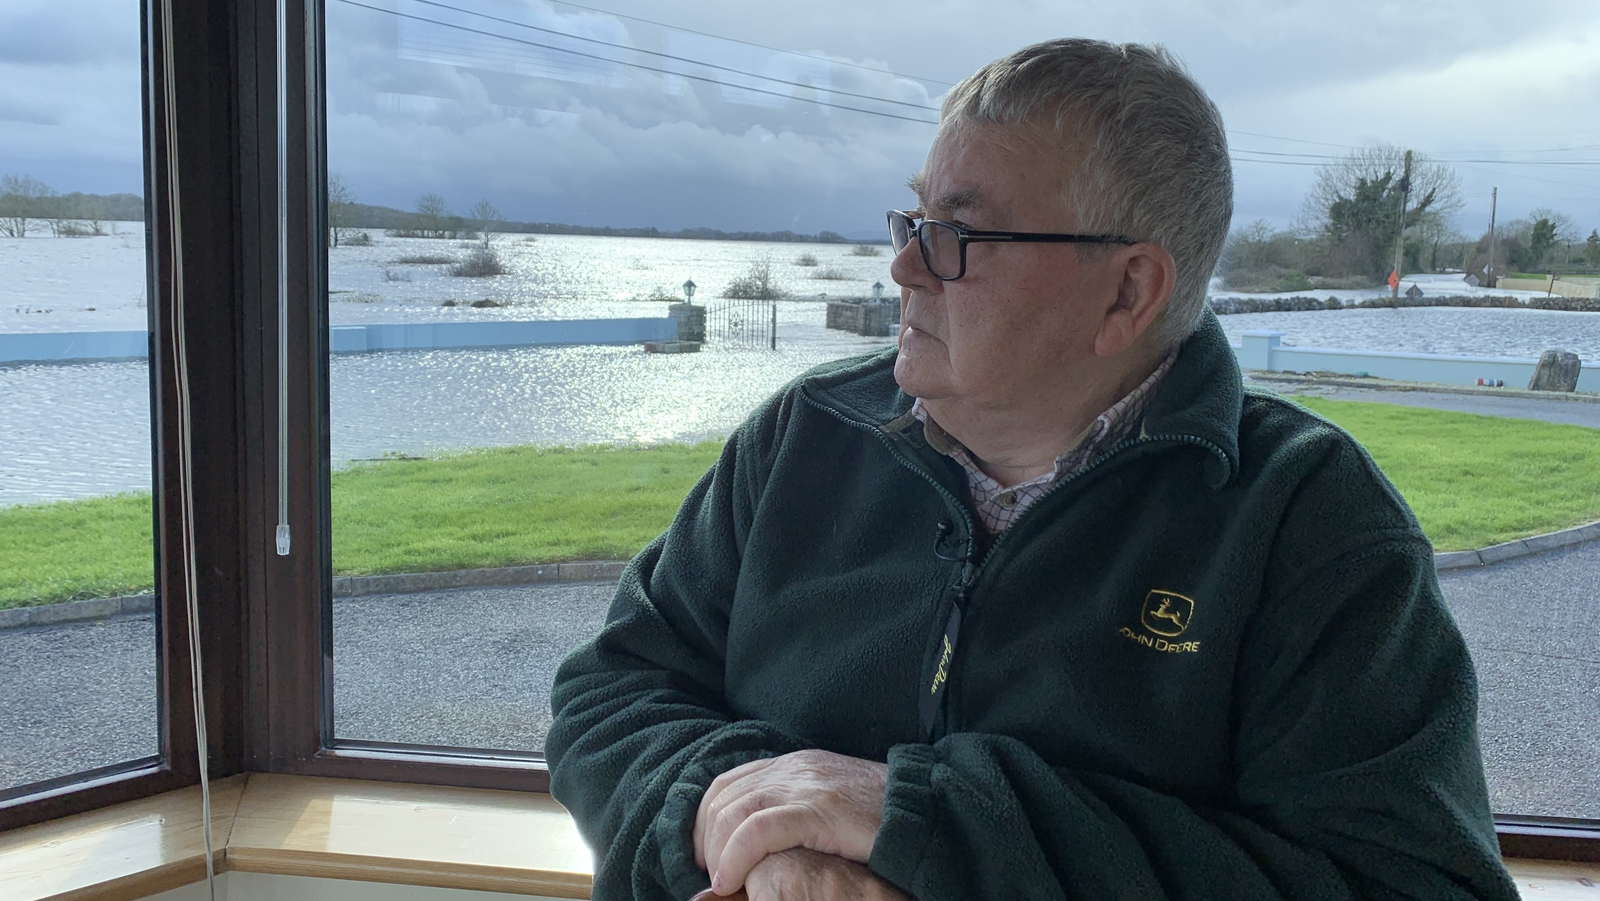 Galway man forced to leave home because of floods